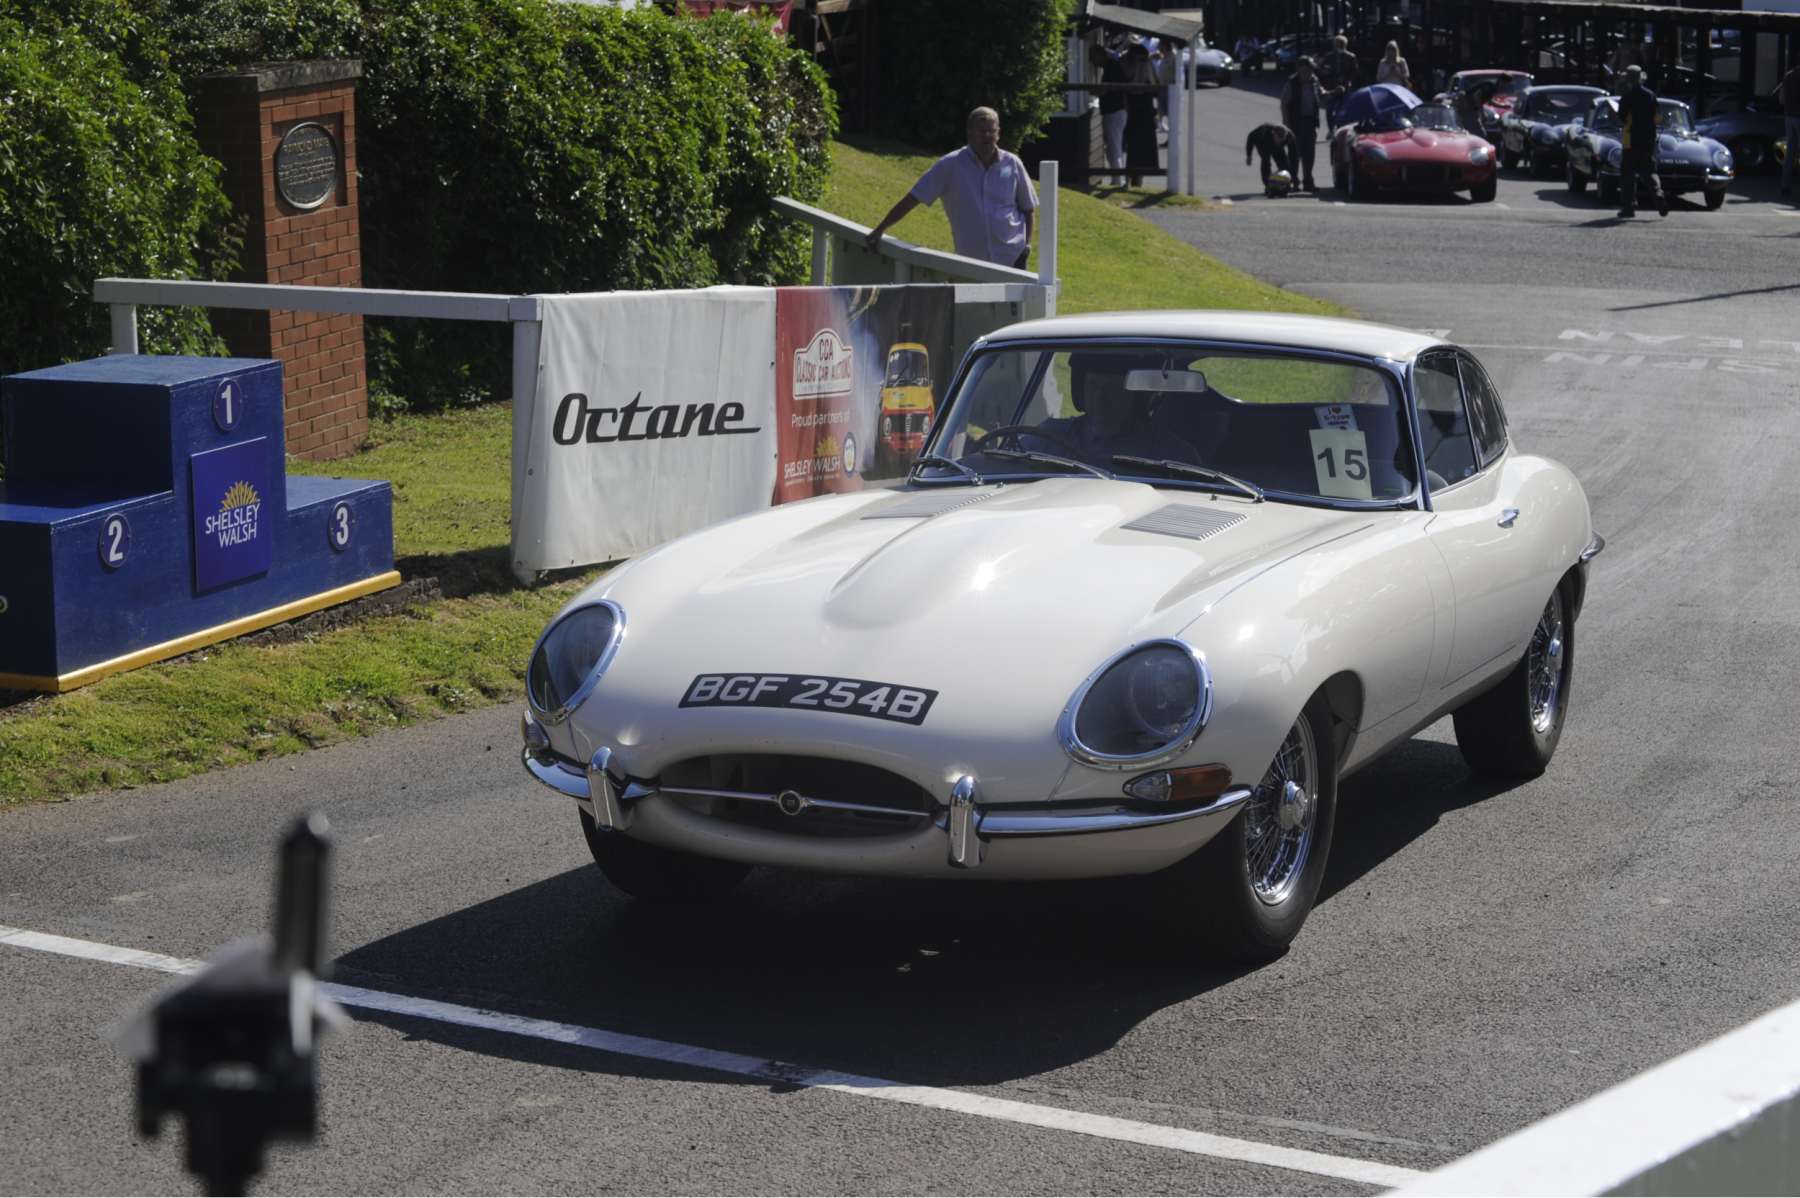 E-type-60-Saturday-photo-by-Abigail-Humphries-46